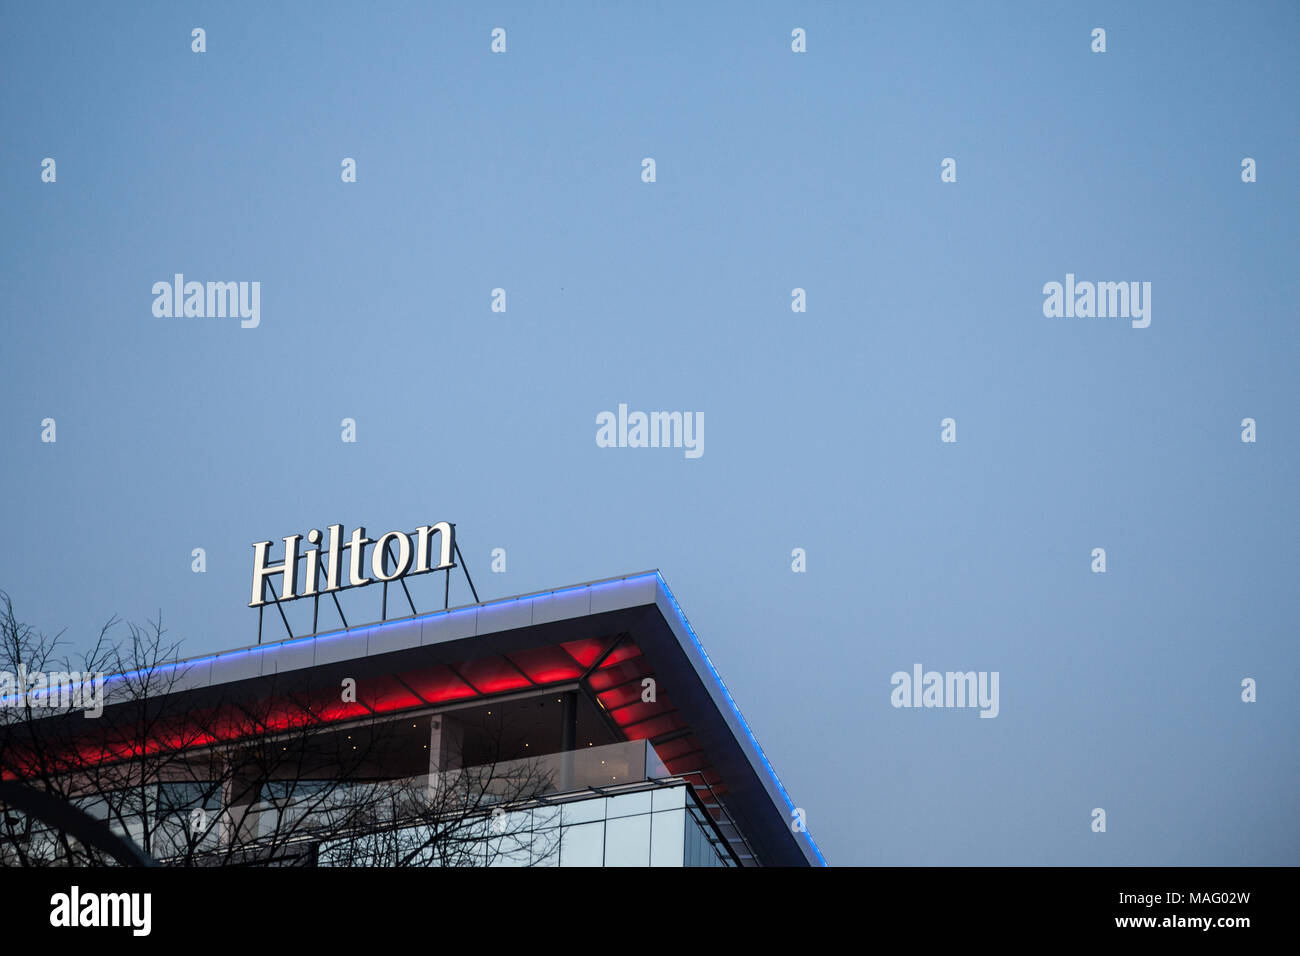 BELGRADE, SERBIA - MARCH 25, 2018: Hilton logo lit on their newly opened hotel of Belgrade, during the evening. Hilton is one of the biggest brands of - Stock Image